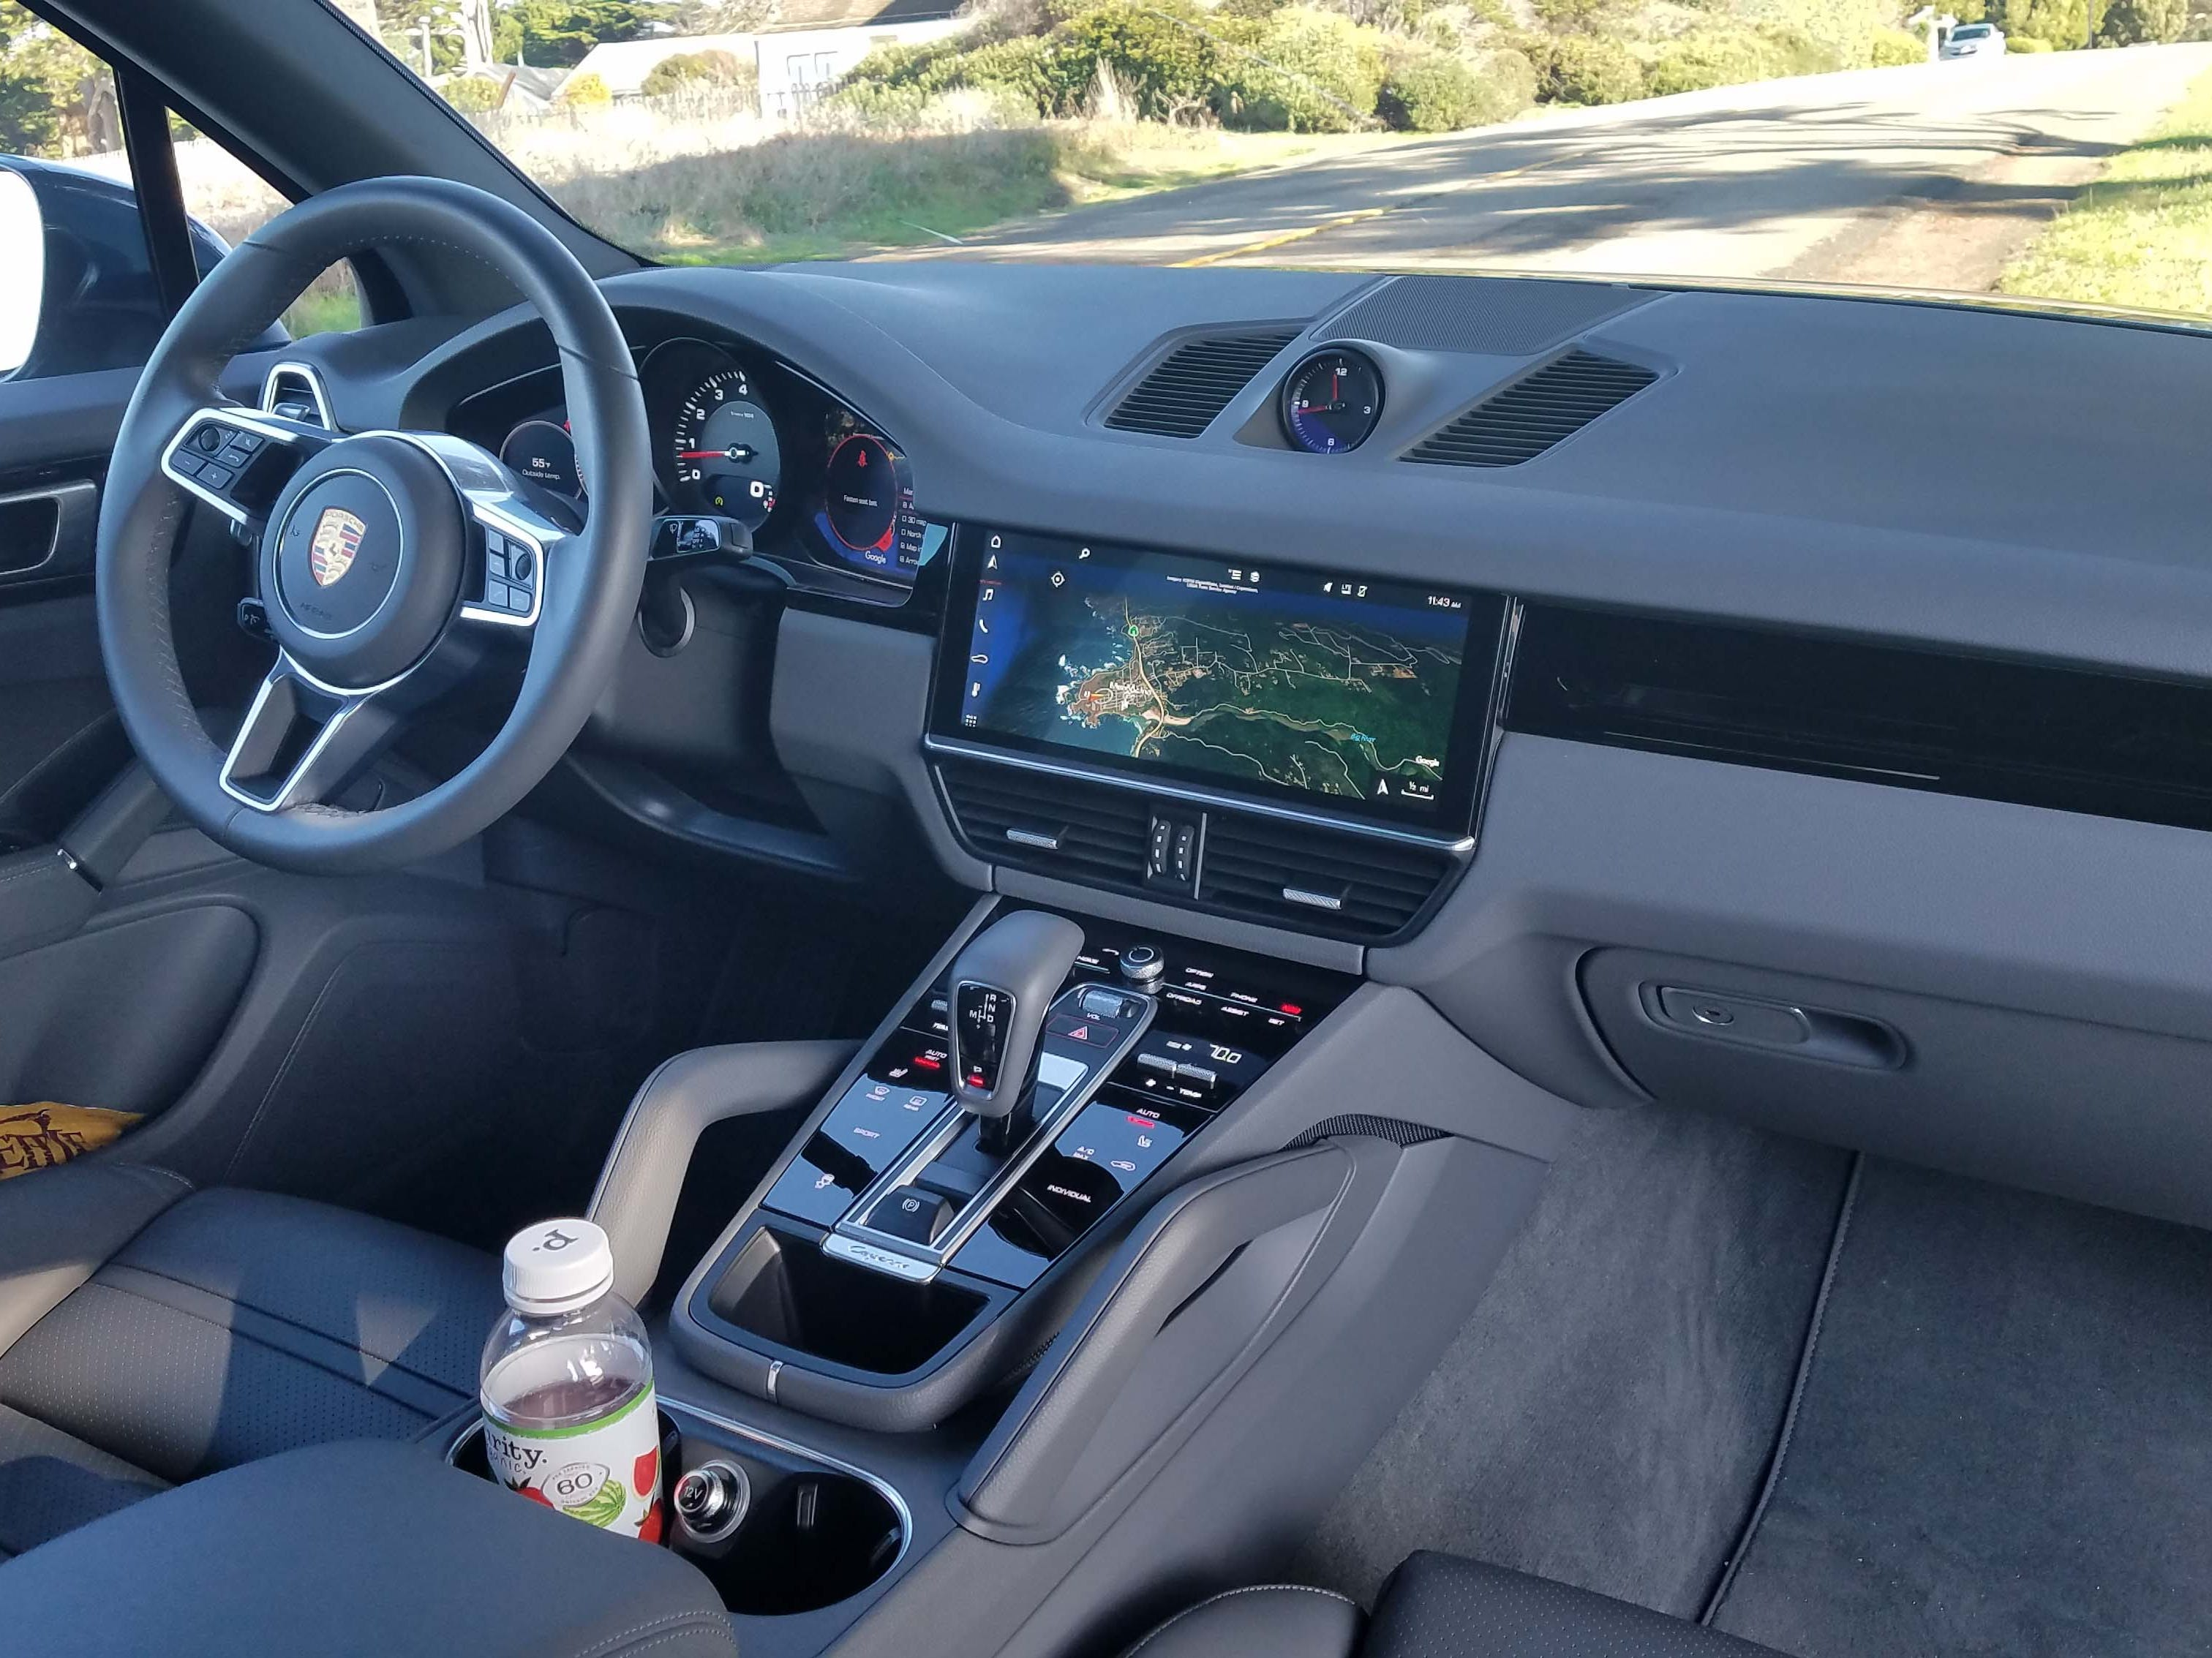 The dash of the 2019 Cayenne looks like the Panamera with its big infotainment screen and sleek black console. The usual, multiple Porsche buttons are still there — but in a more subtle digital graphic layout.